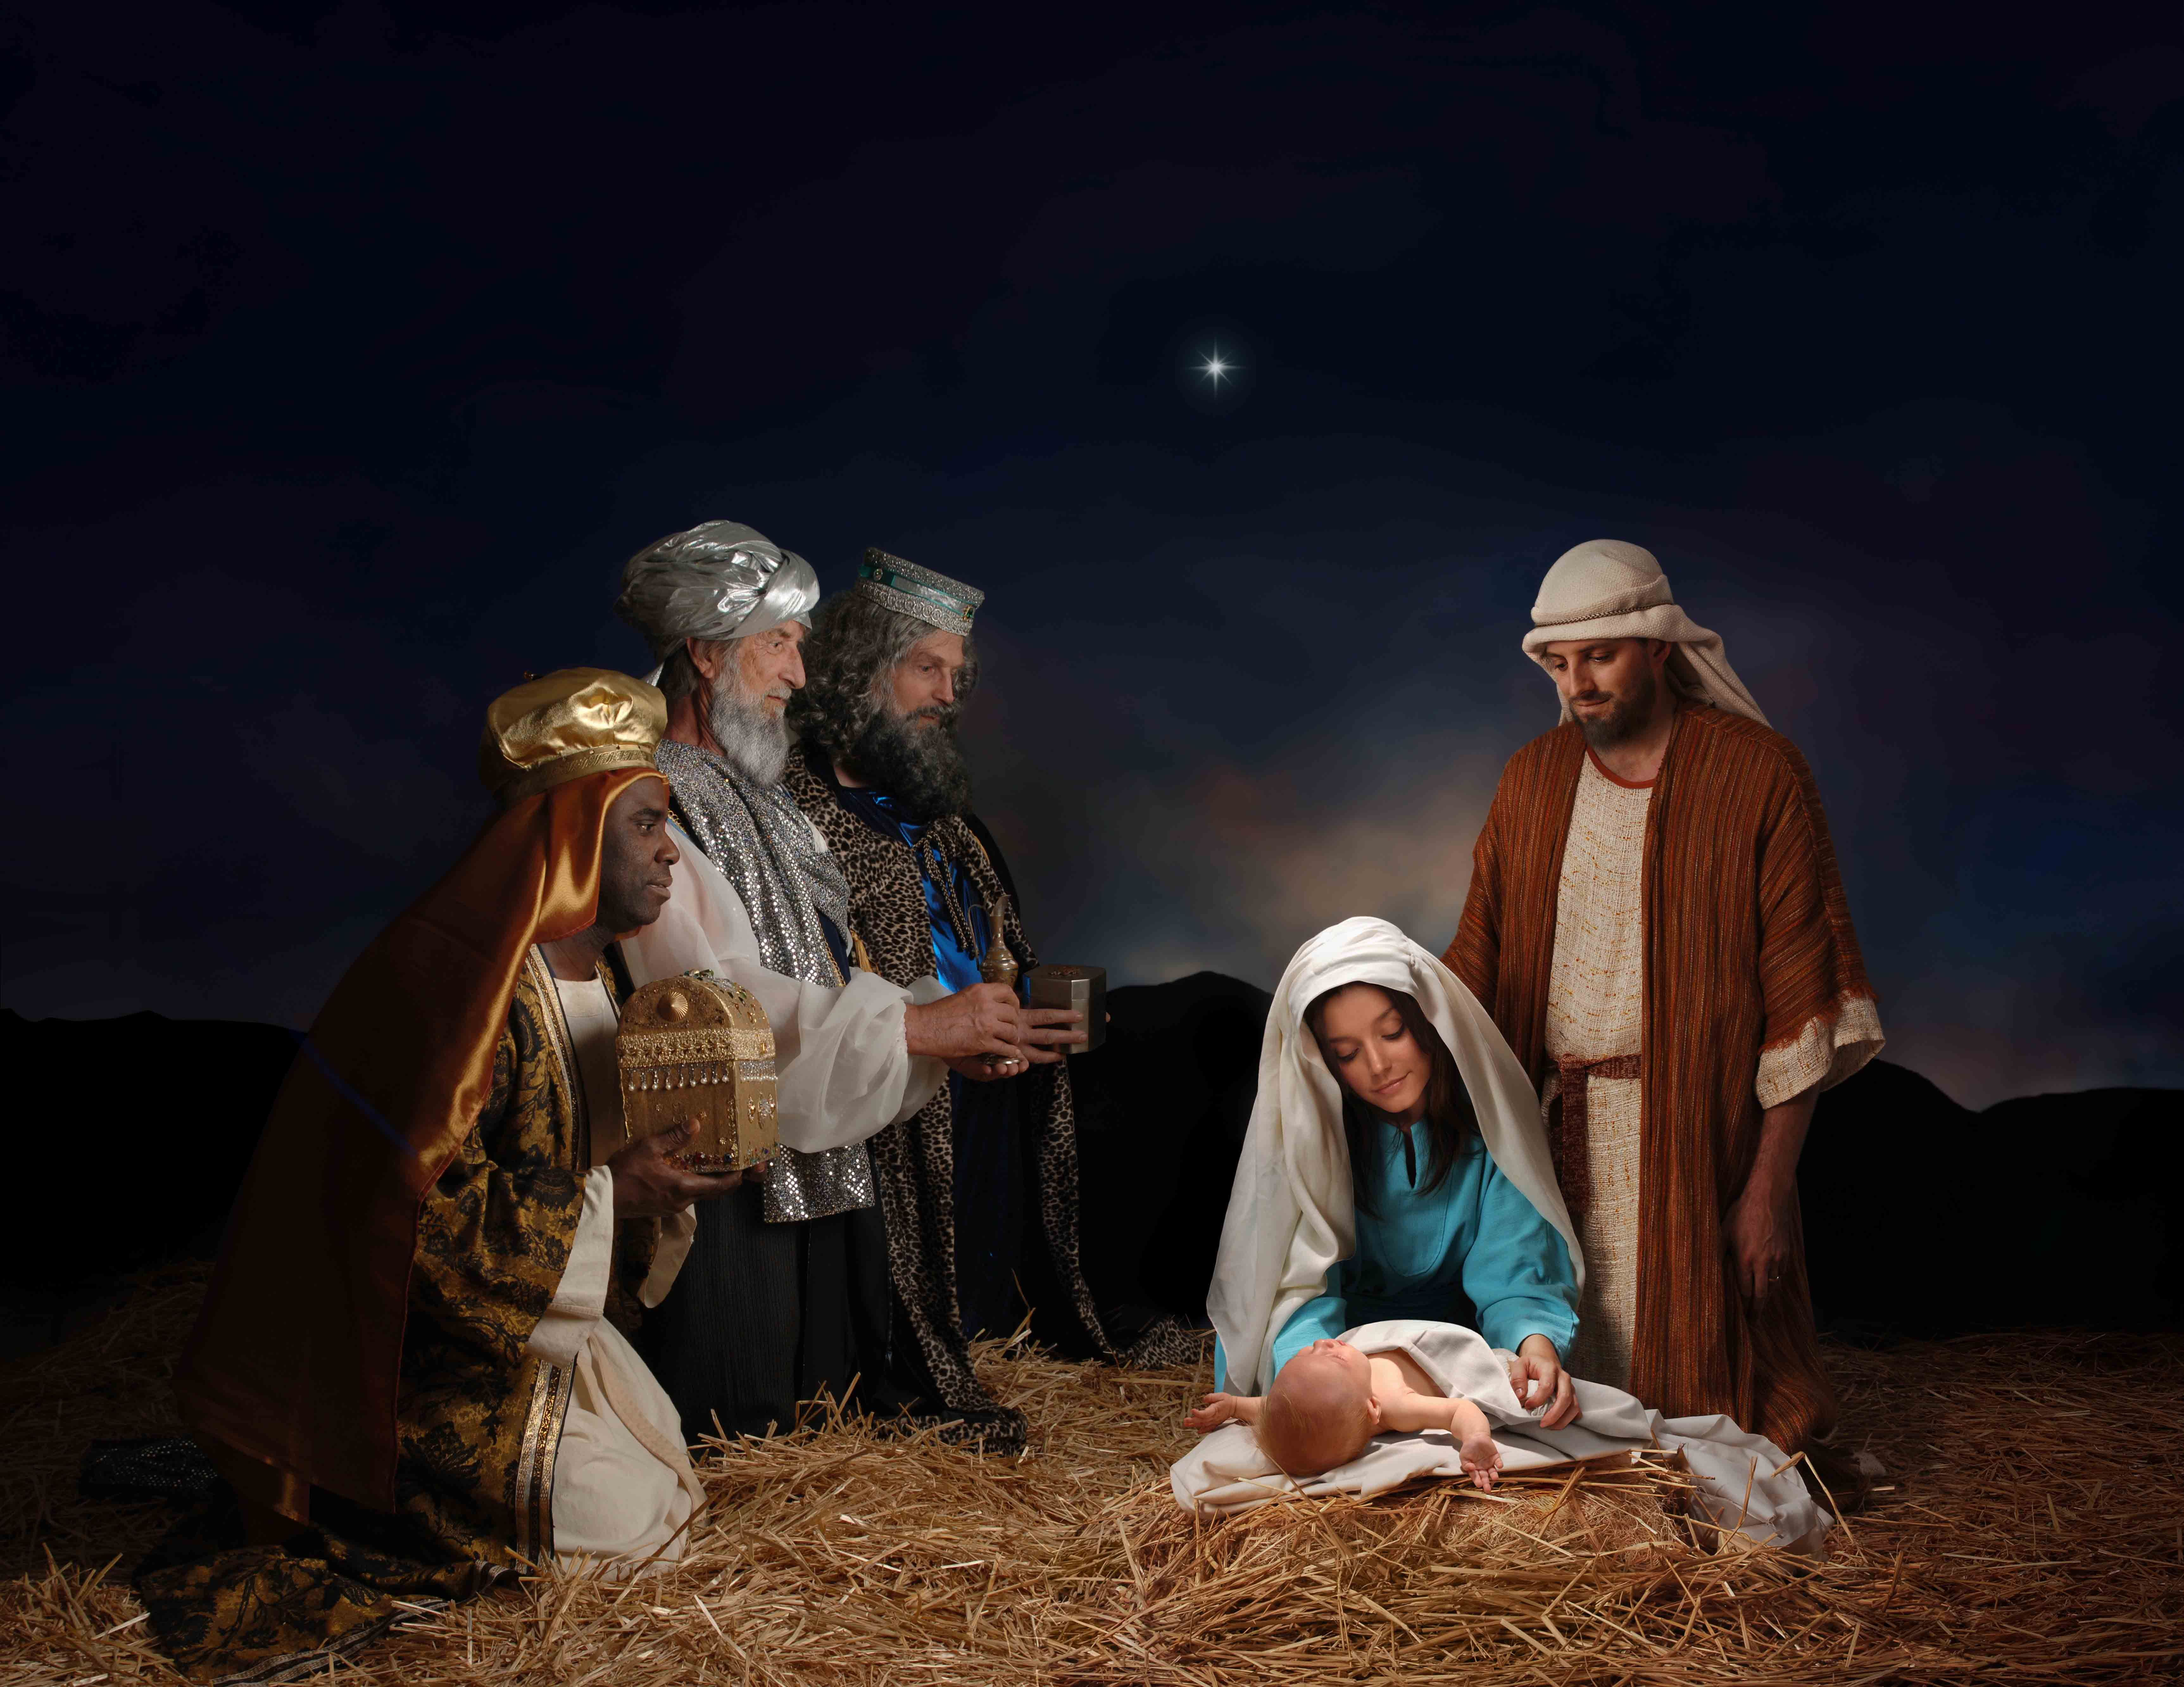 6900x5330 Virgin Mary Gives Births To Jesus Christ HD Wallpaper ...